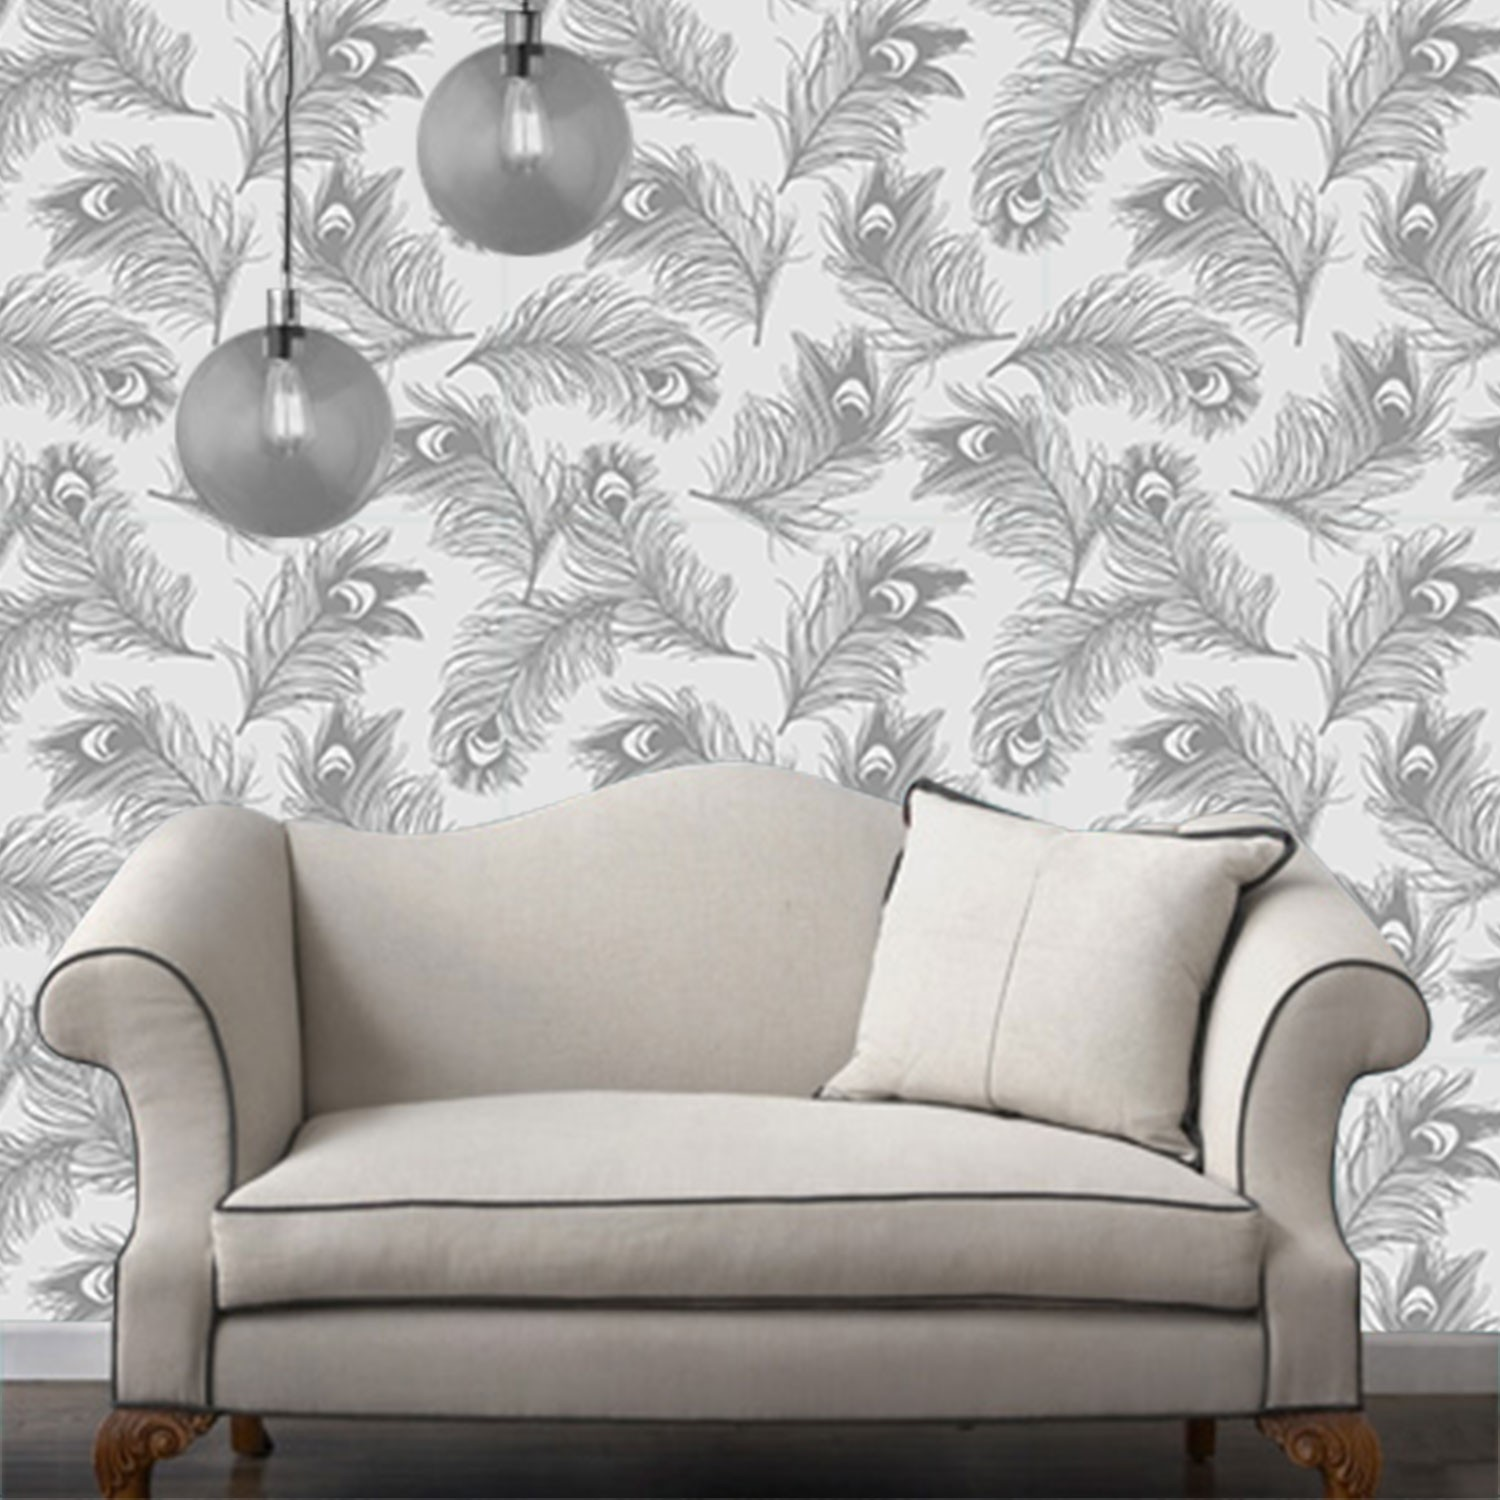 Temporary wallpaper feather metallic from dormify for Metallic removable wallpaper